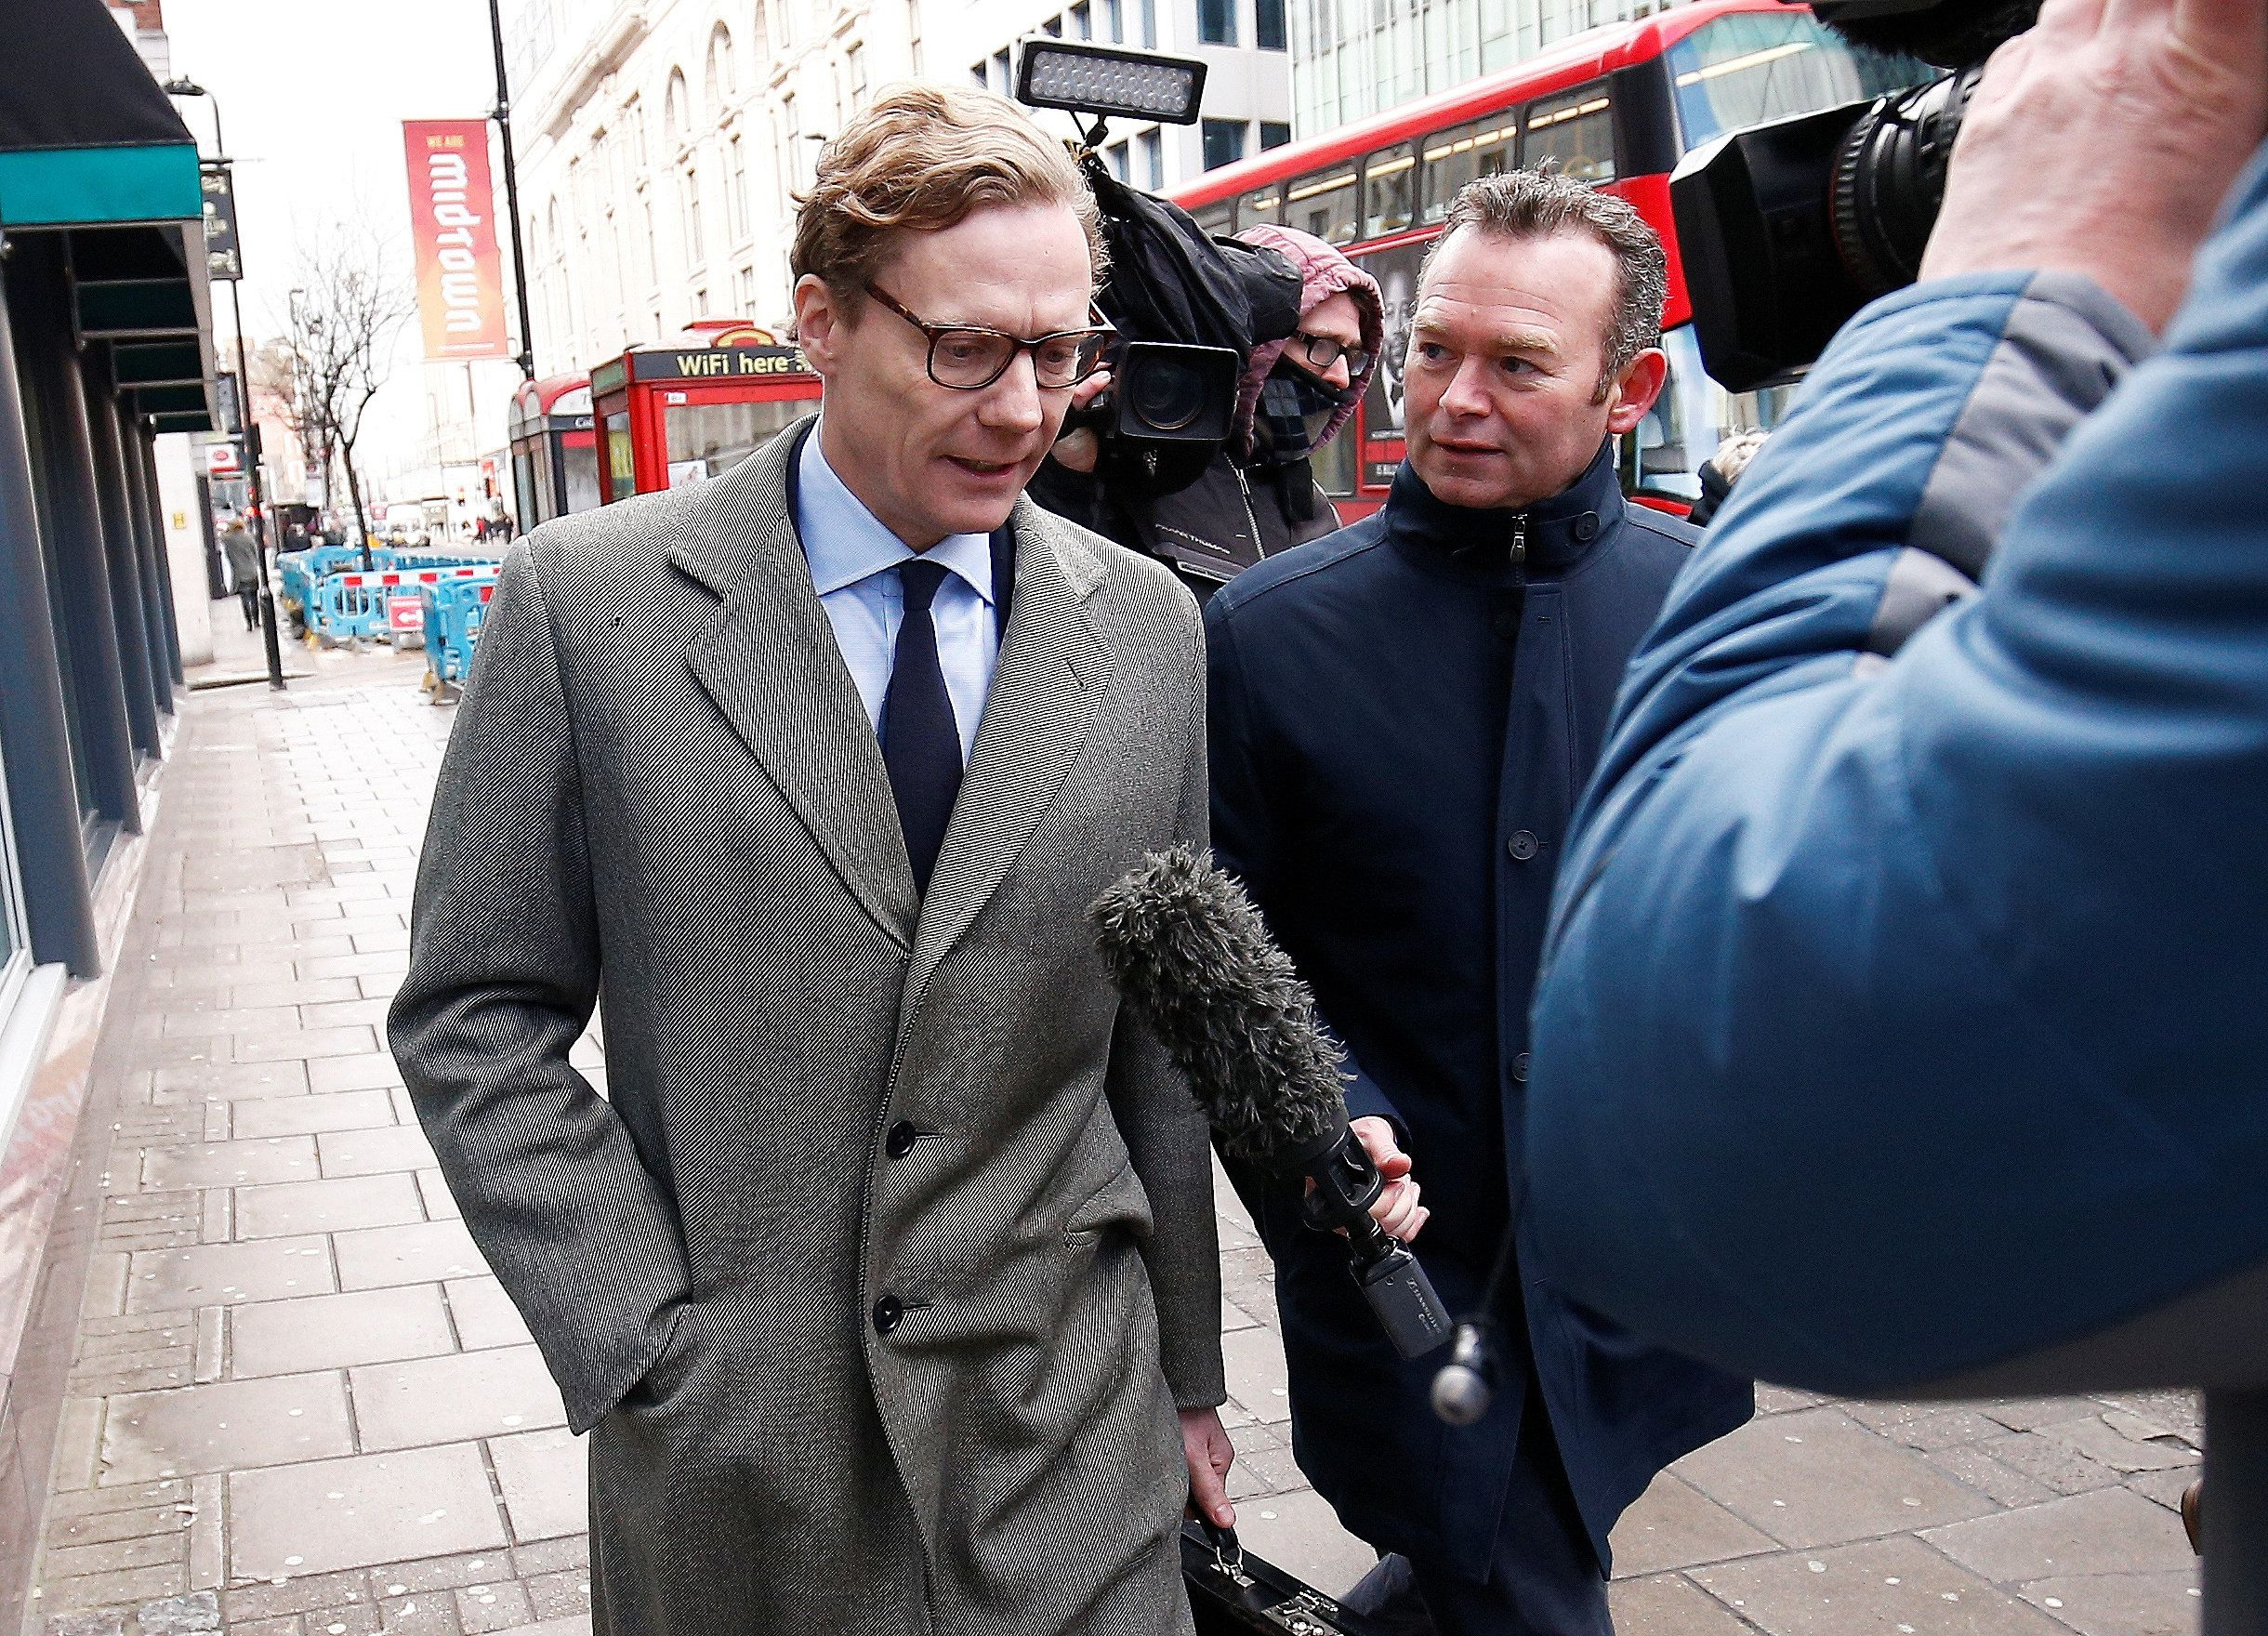 Alexander Nix, CEO of Cambridge Analytica arrives at the offices of Cambridge Analytica in central London, Britain, March 20, 2018. REUTERS/Henry Nicholls